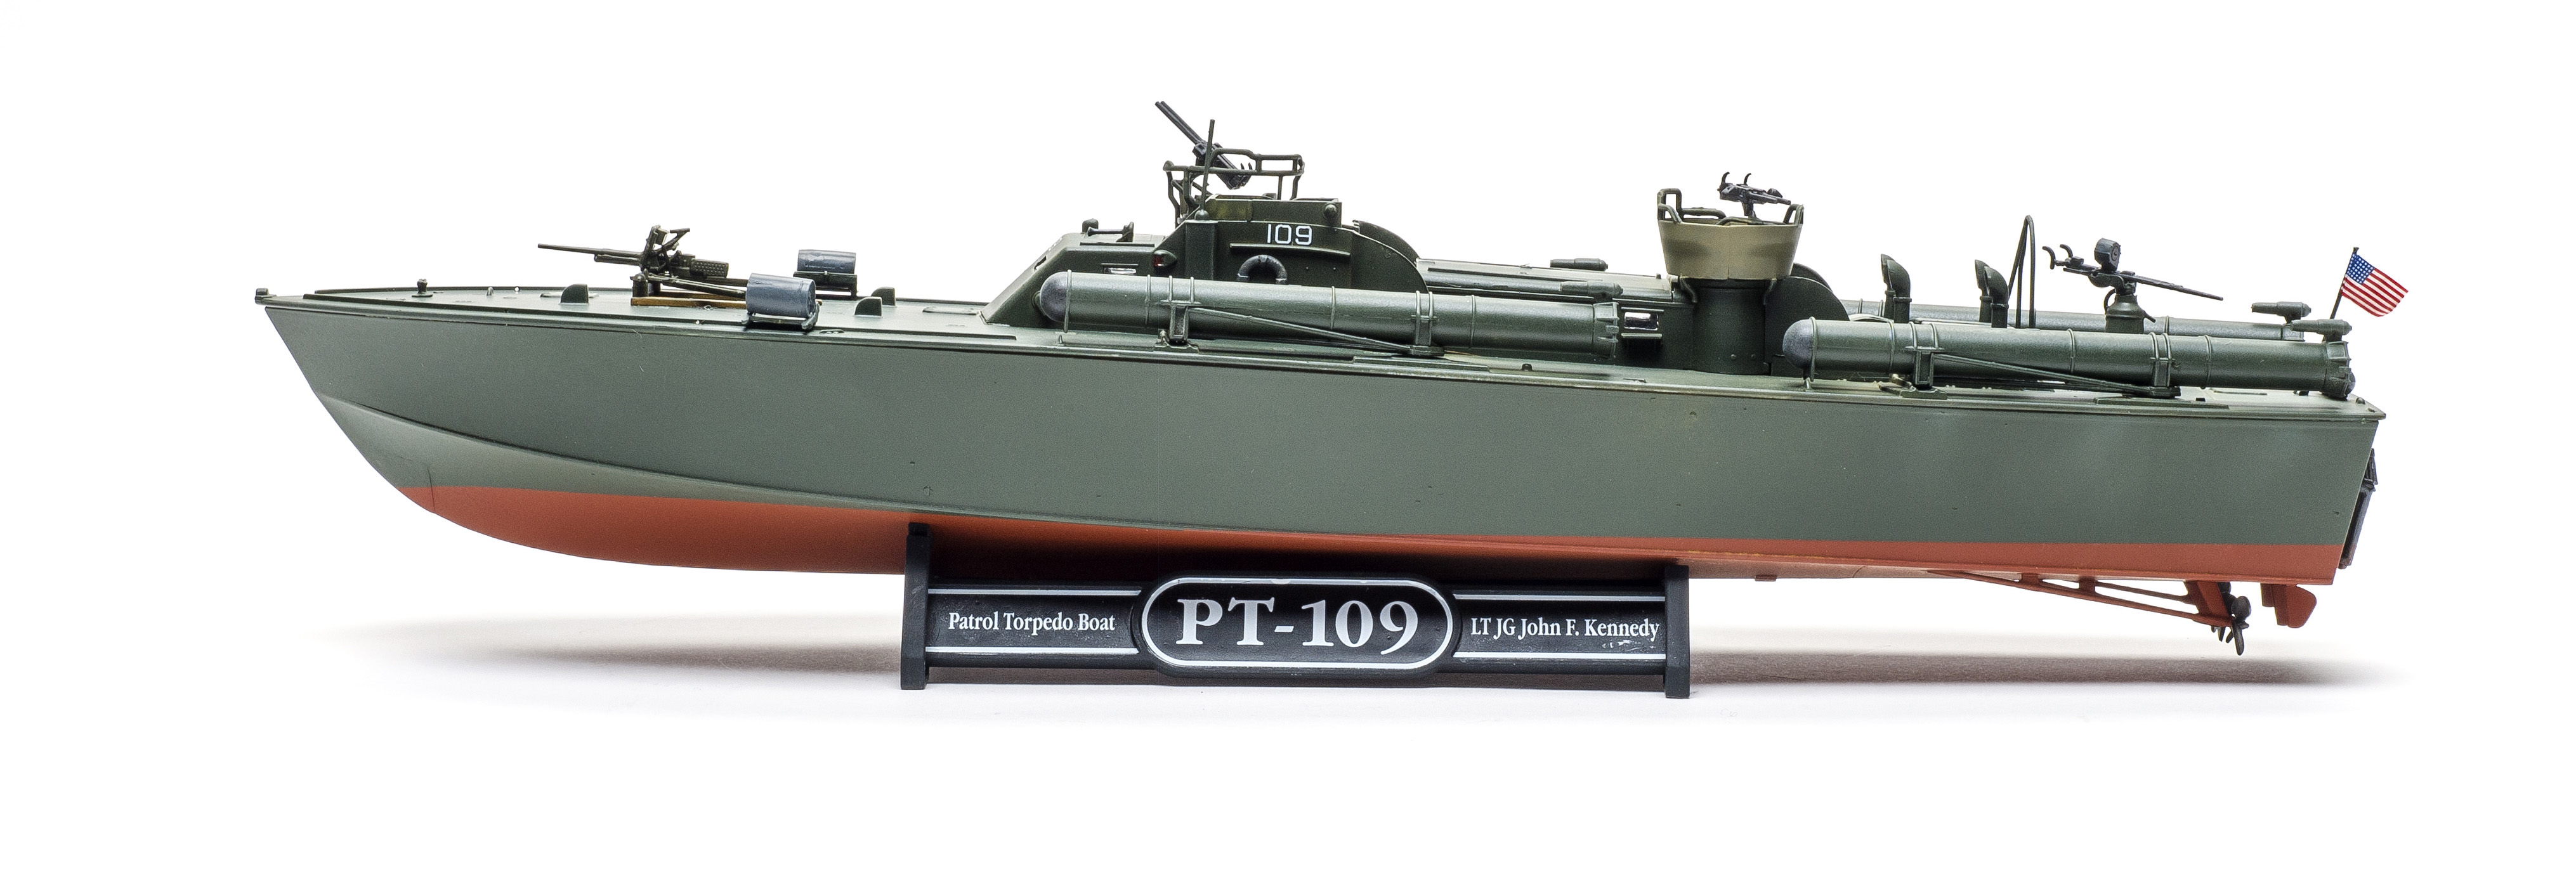 Build review of the Revell PT-109 patrol torpedo boat scale